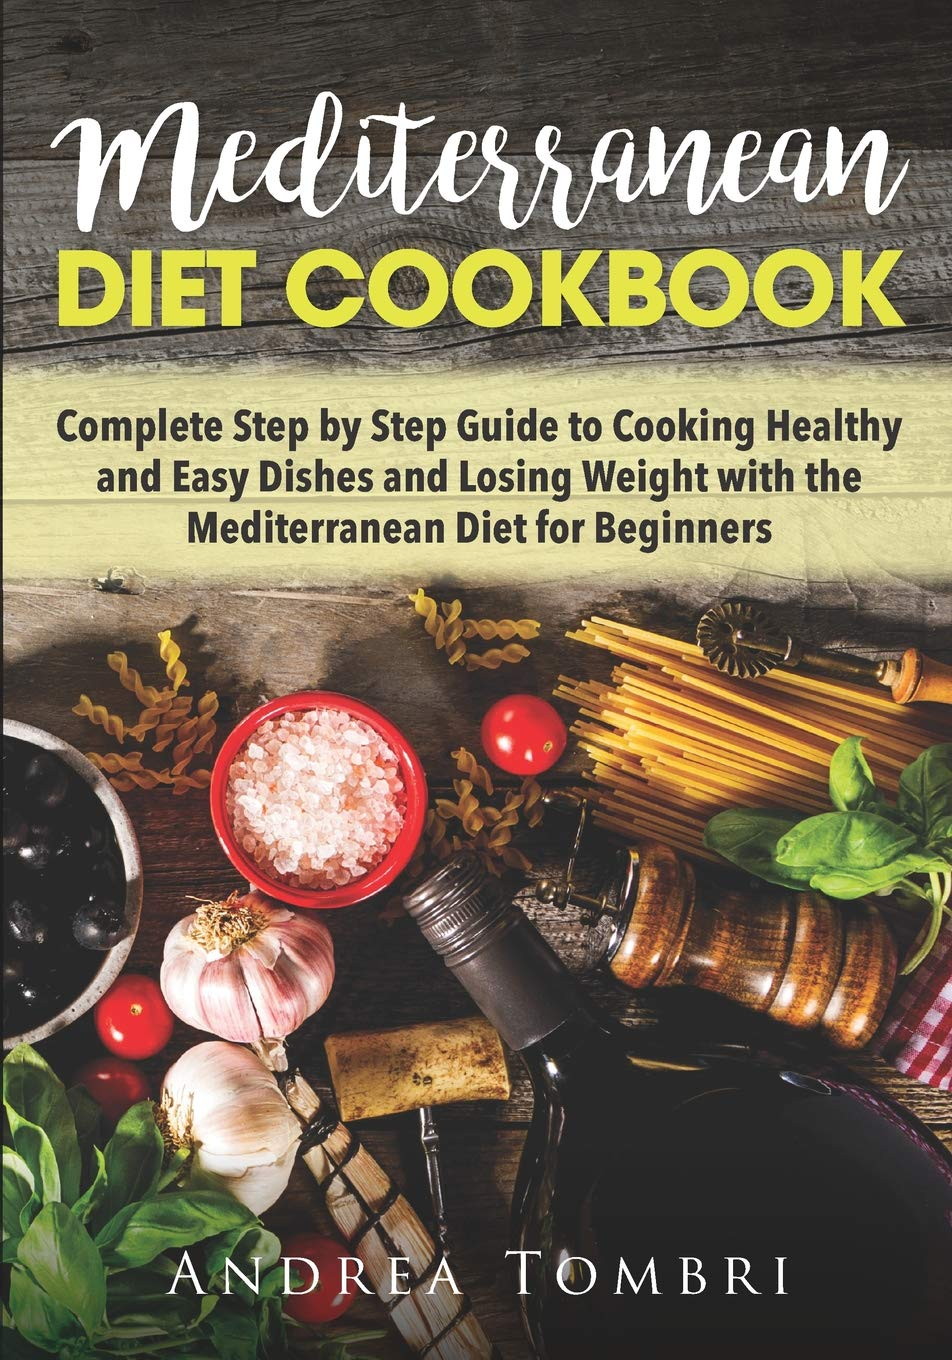 Image OfMediterranean Diet Cookbook: Complete Step By Step Guide To Cooking Healthy And Easy Dishes And Losing Weight With The Med...